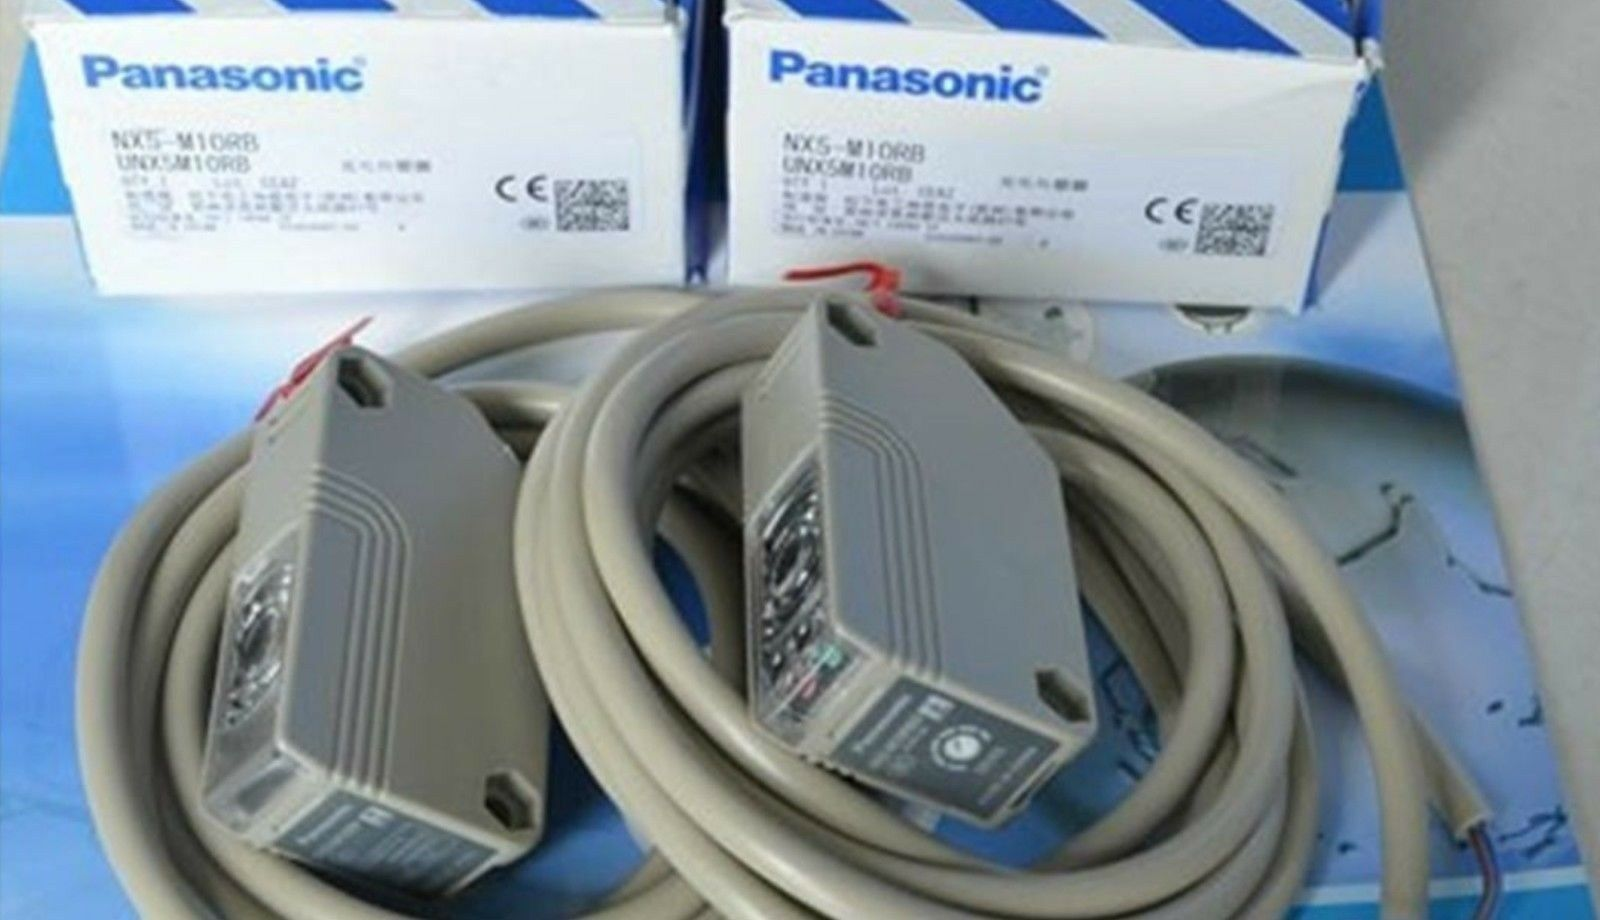 New Panasonic PLC SUNX NX5-M10RB